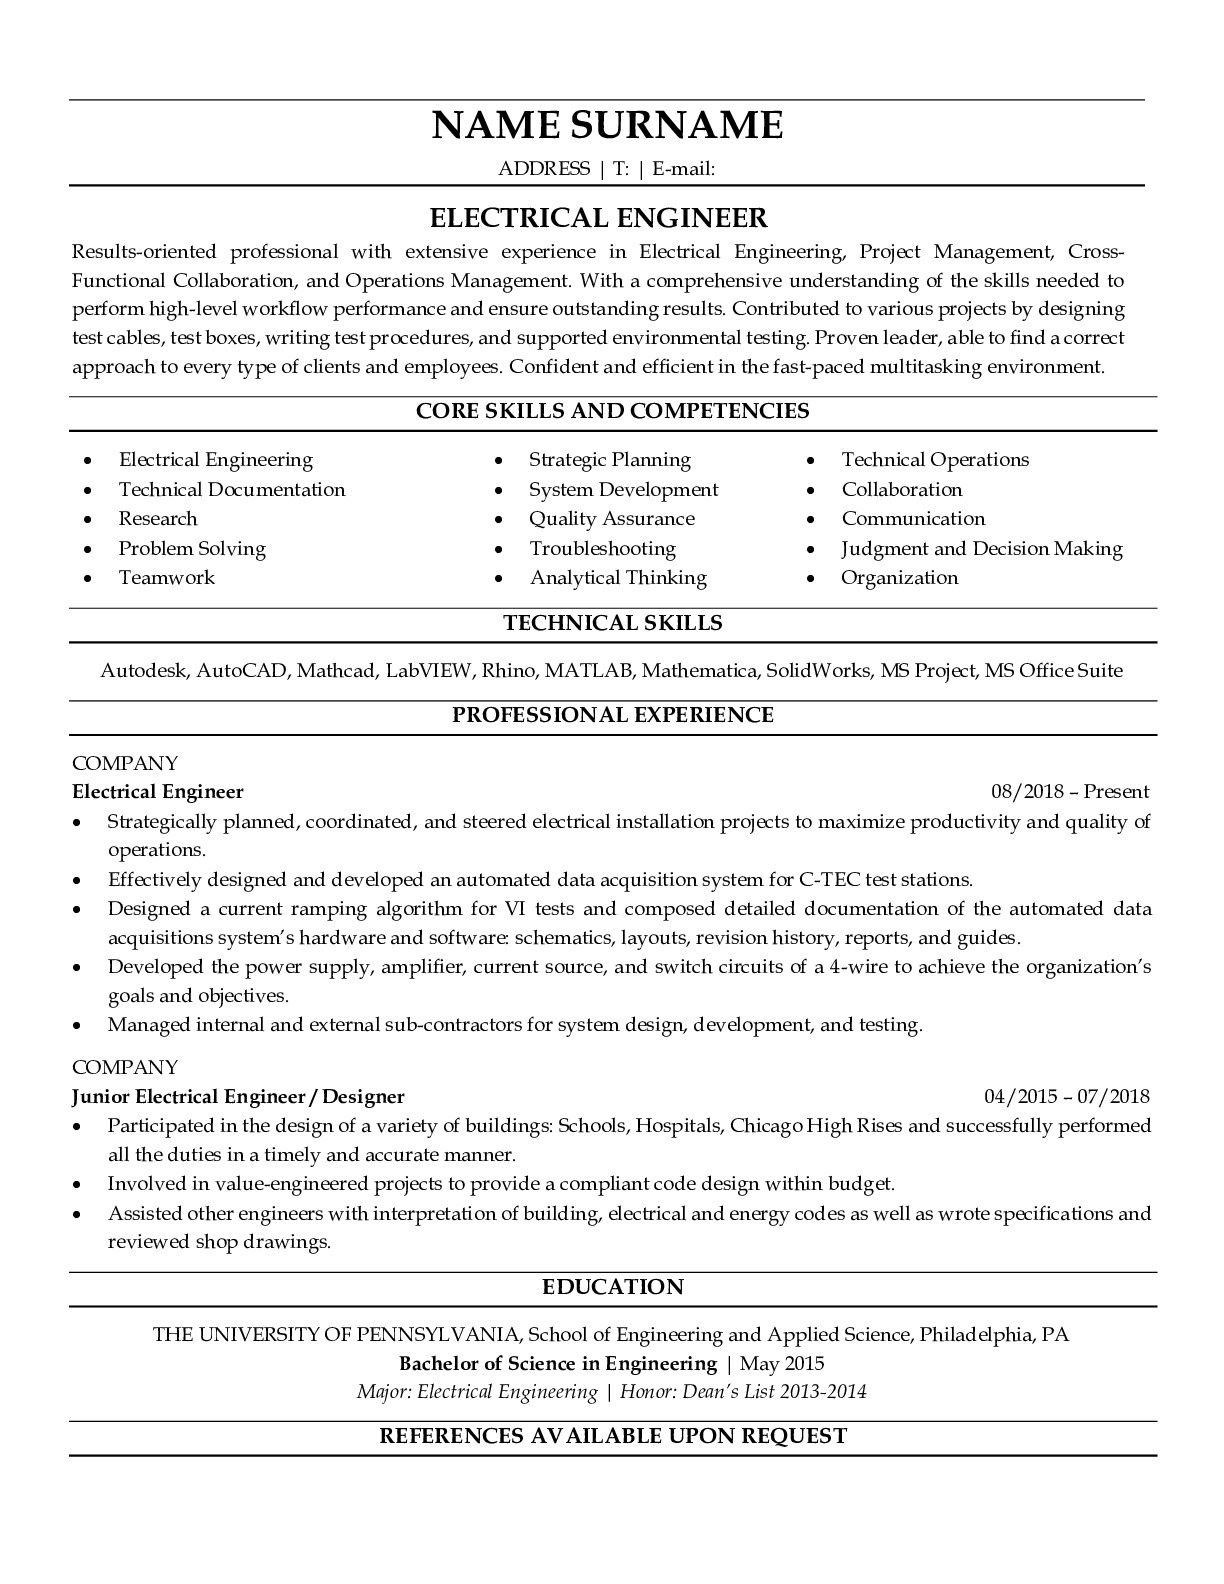 Resume Example for Electrical Engineer